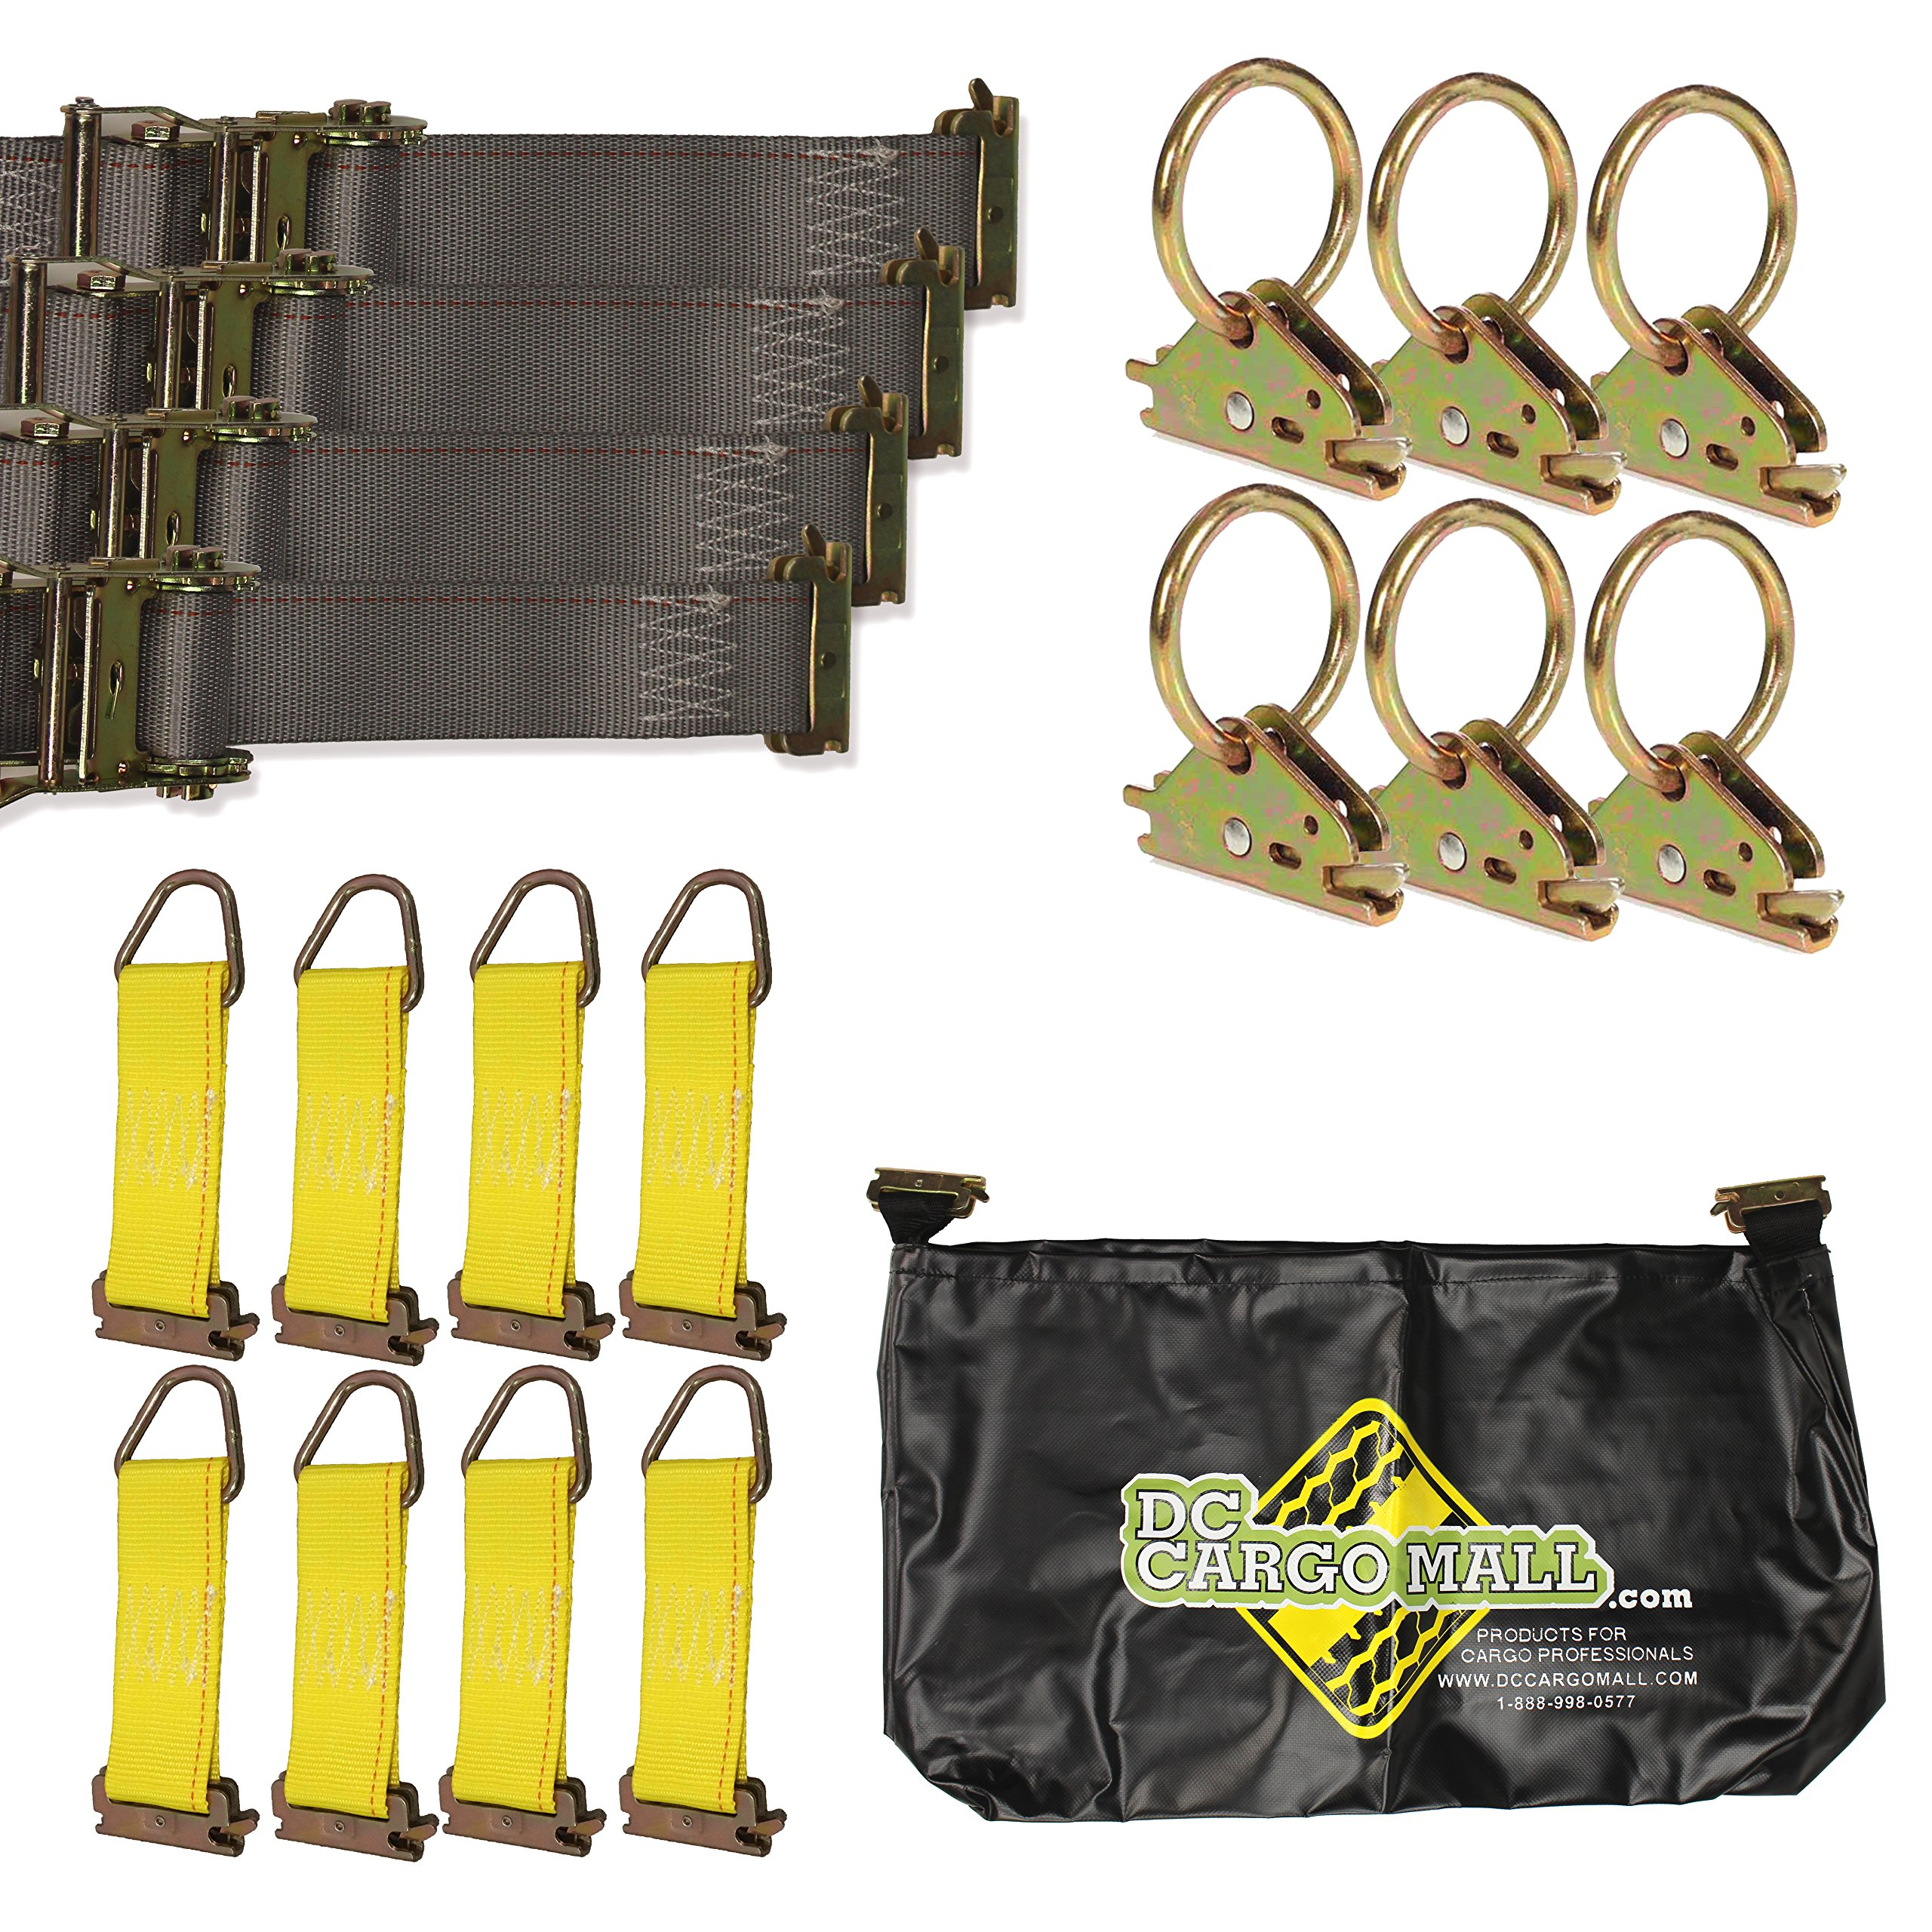 E-Track TieDown Kit! FOUR 2''x16' Ratchet Straps, EIGHT TieOffs, SIX O Rings, ONE Etrack Bag. Ideal TieDown Accessories Bundle for Trucks, Warehouses, Docks, Trailers, Boats. E-track NOT included. by DC Cargo Mall (Image #1)